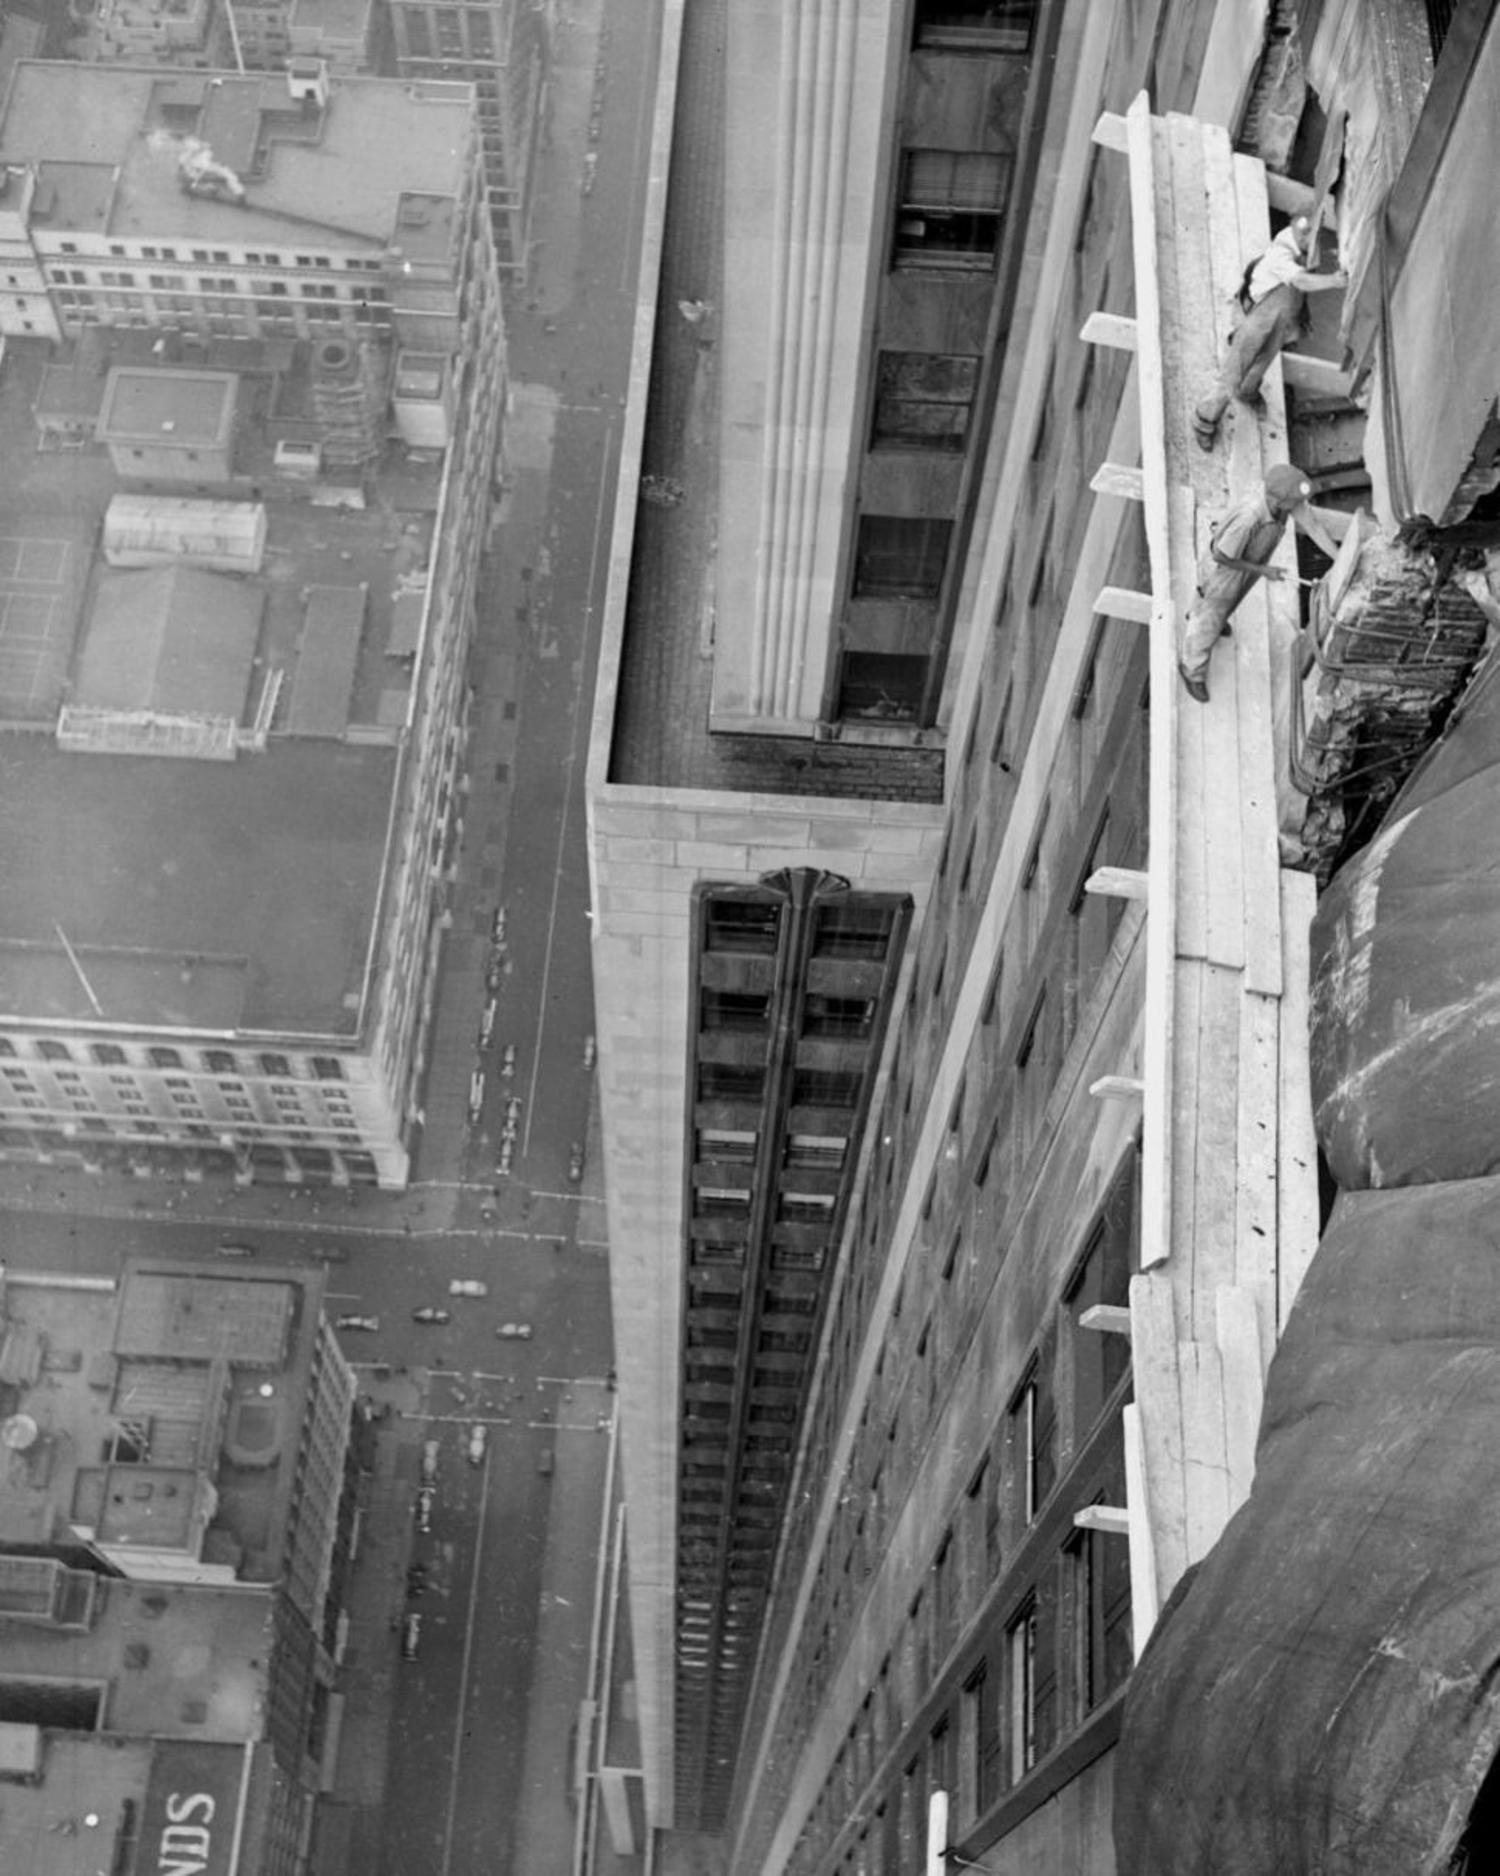 Workmen begin the costly job of repairing the damage done to the worl'd highest building the freak plane crash.